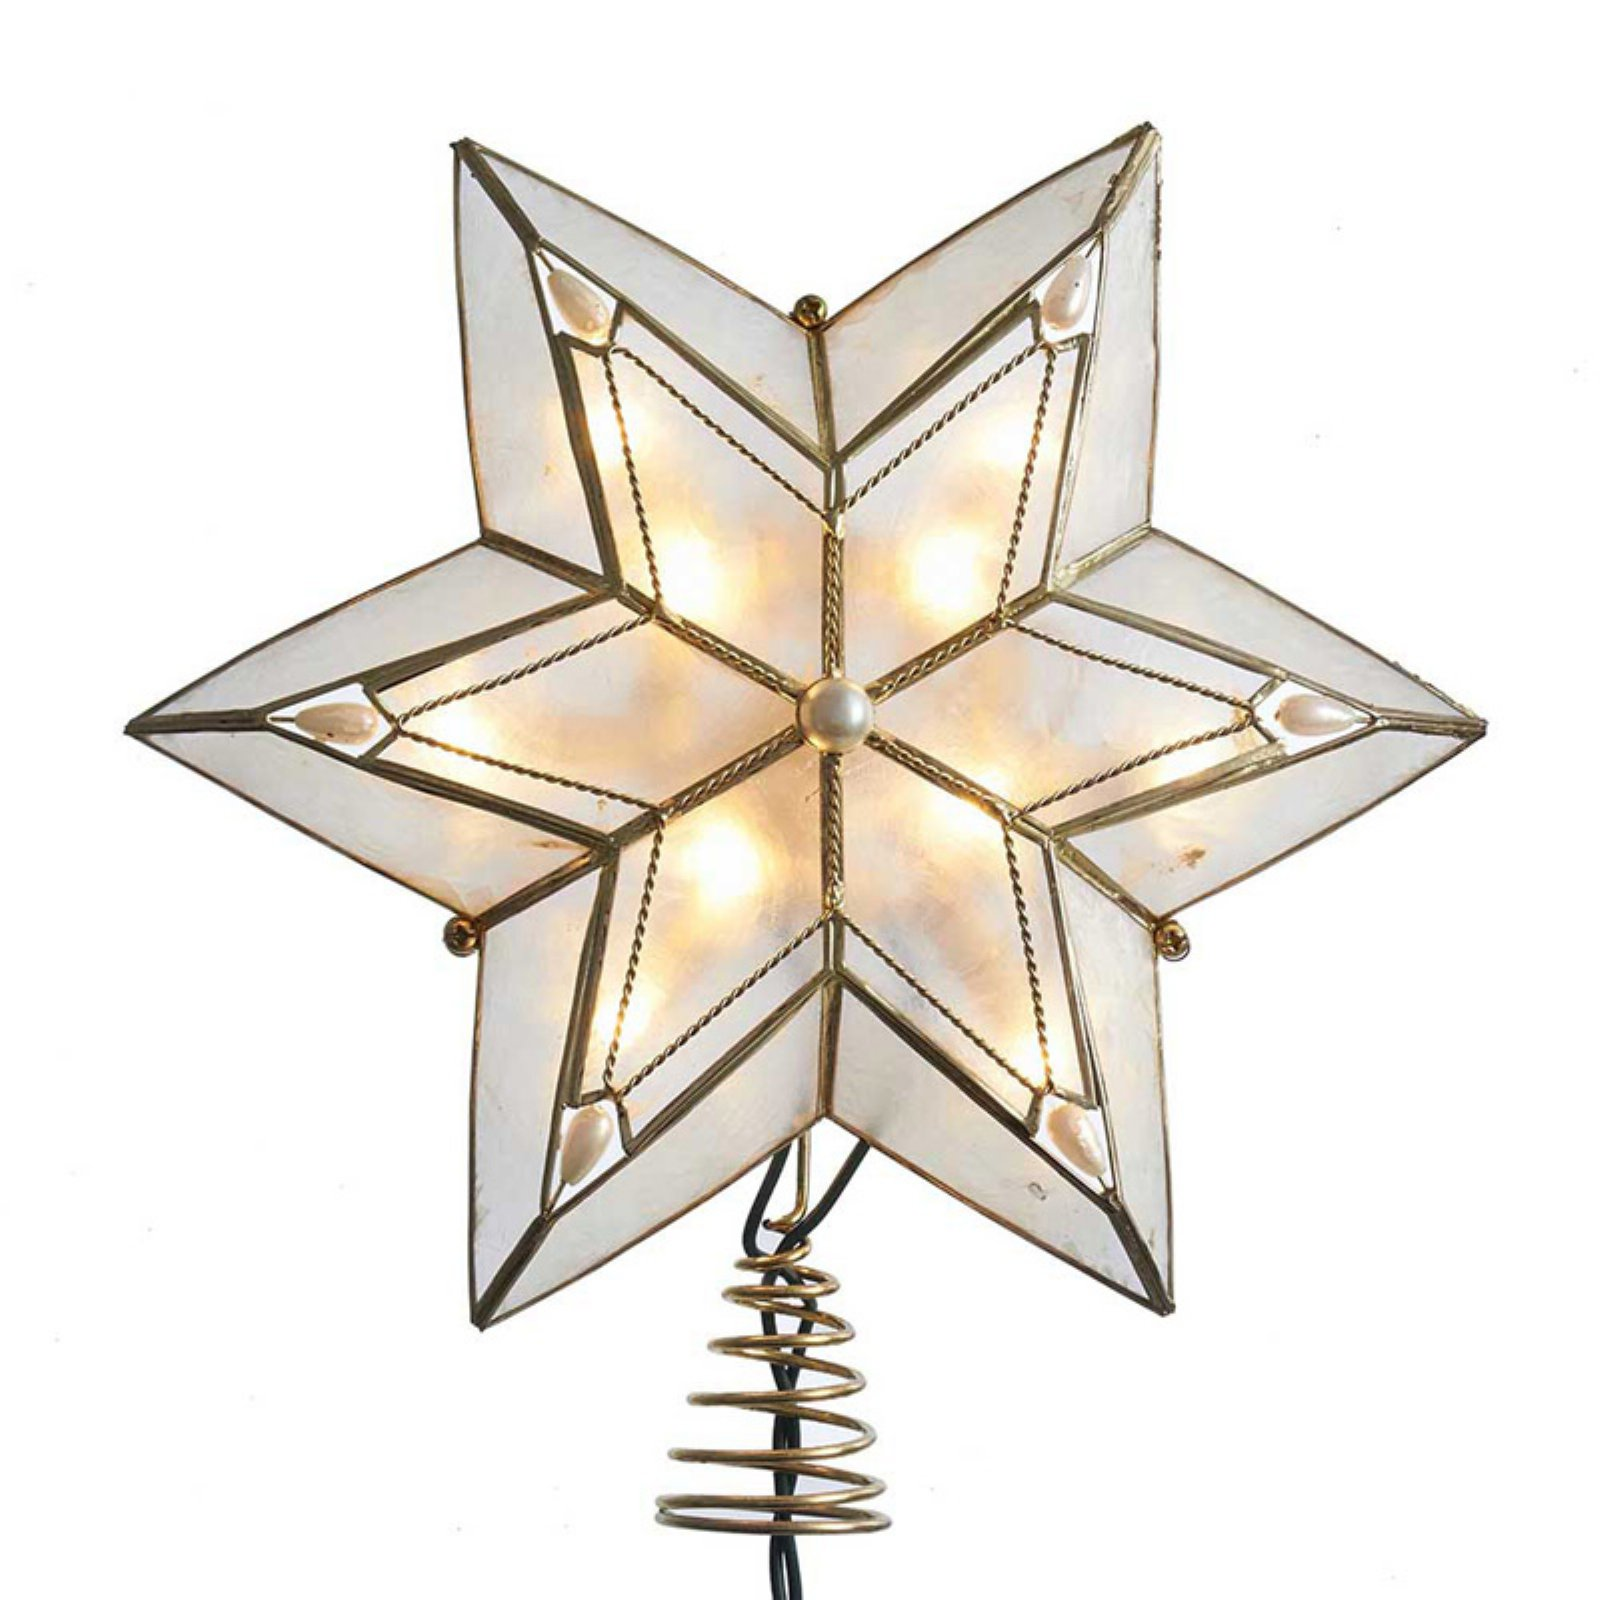 Kurt S. Adler 10-Light Capiz Star Treetop